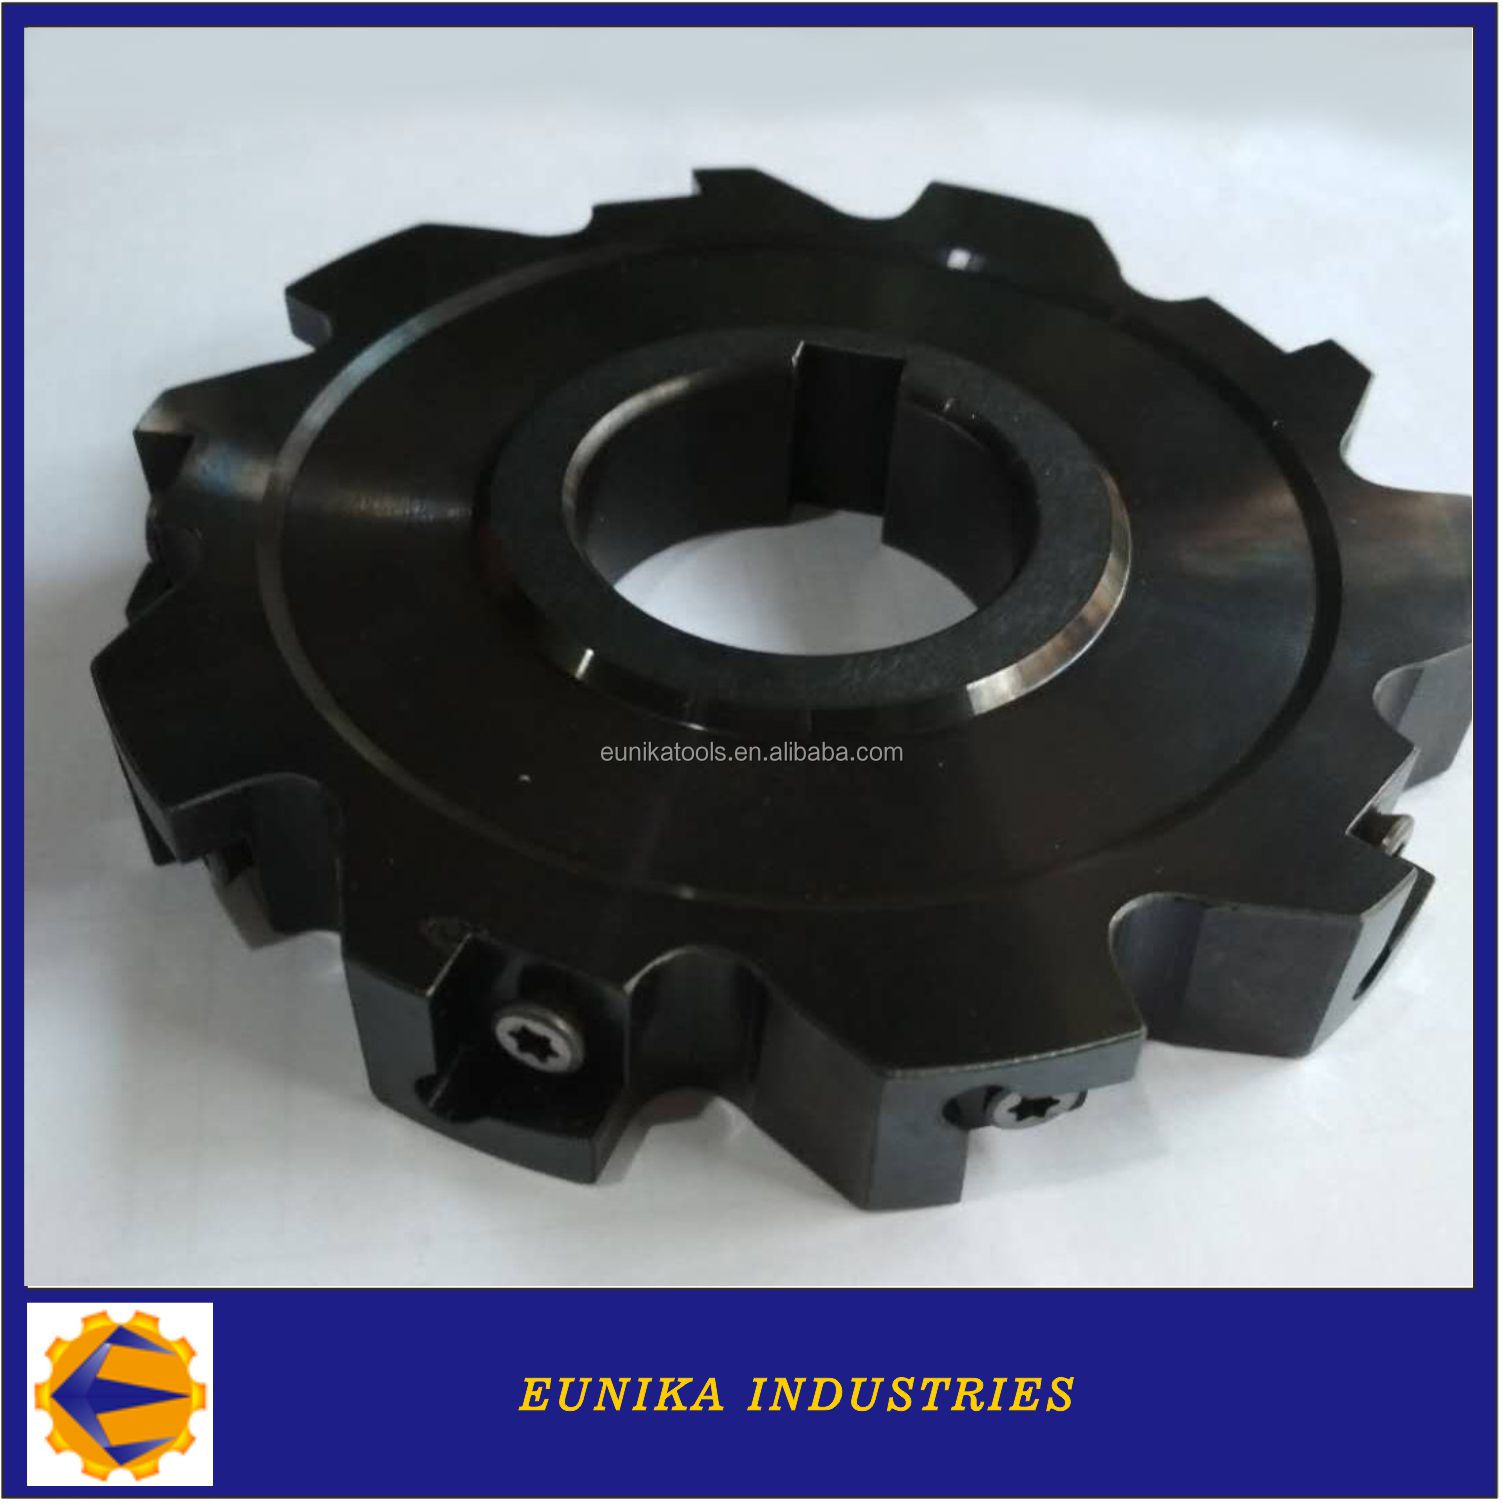 Customized 80-315mm Carbide Tipped Three Side and Face Mill